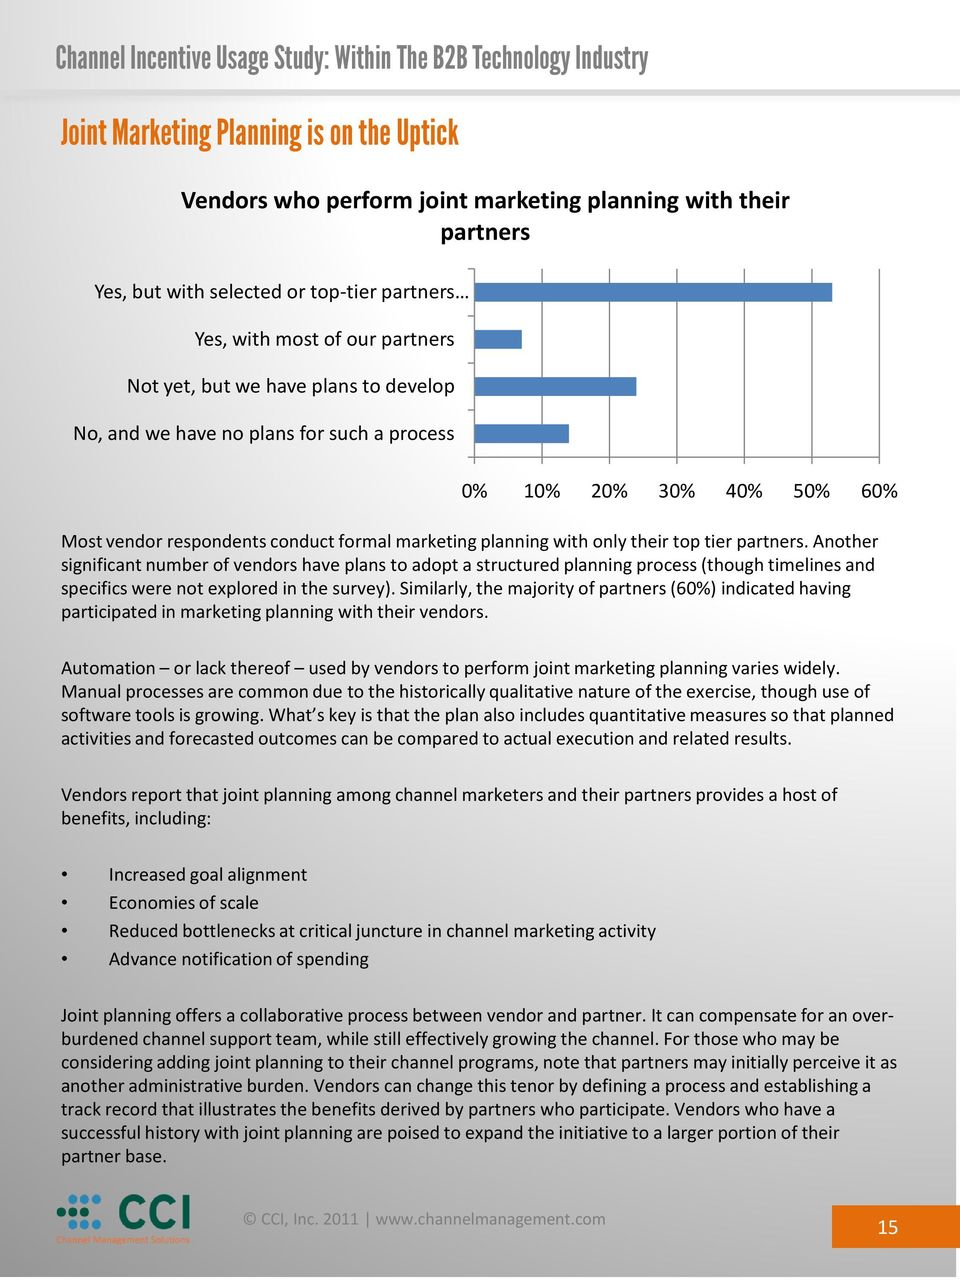 Another significant number of vendors have plans to adopt a structured planning process (though timelines and specifics were not explored in the survey).